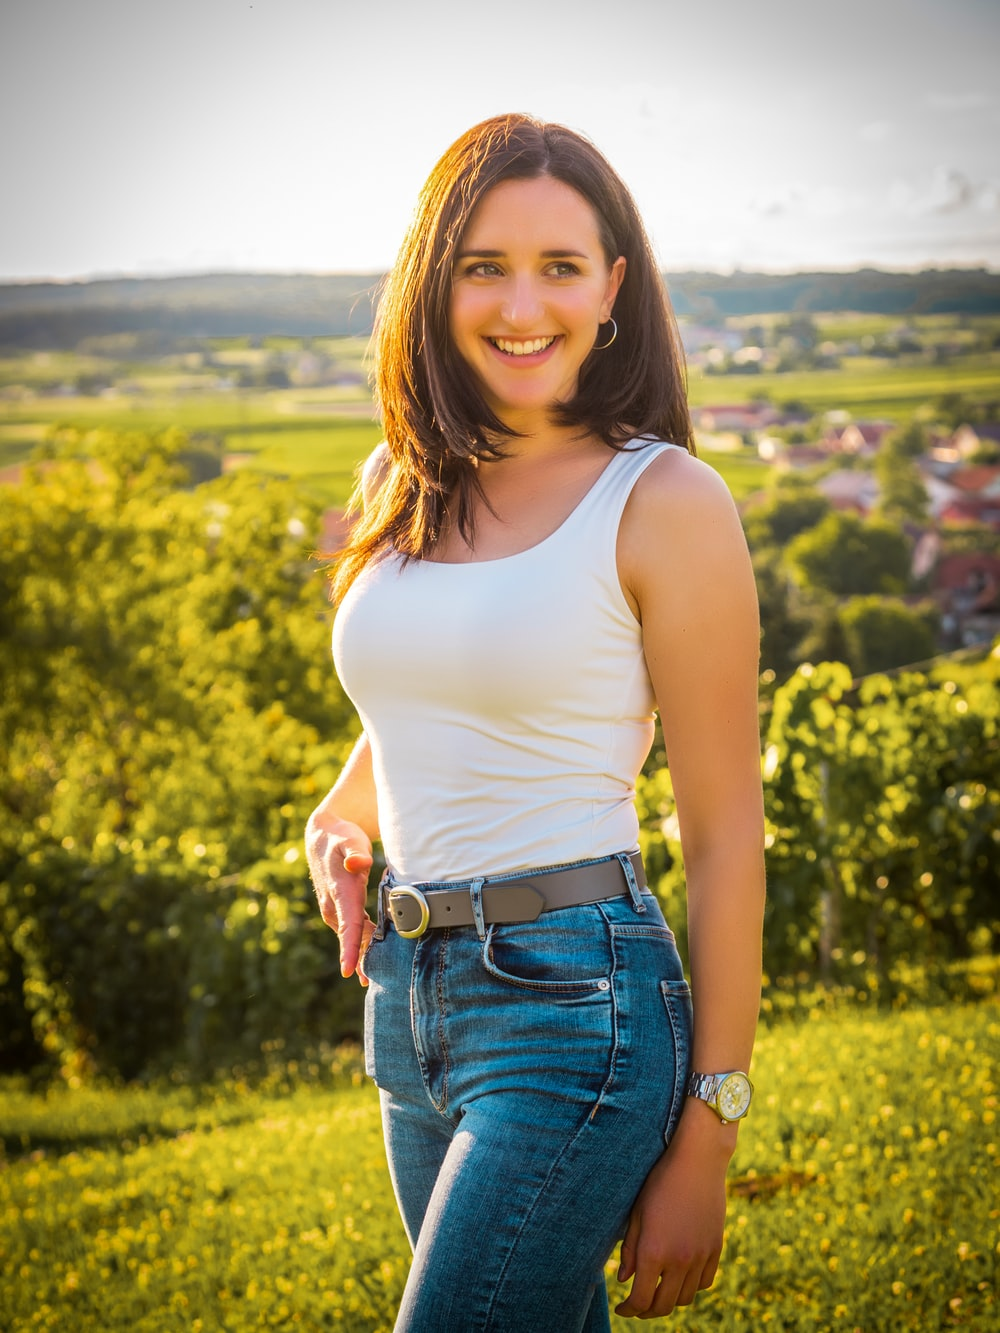 woman in white tank top and blue denim shorts standing on green grass field during daytime